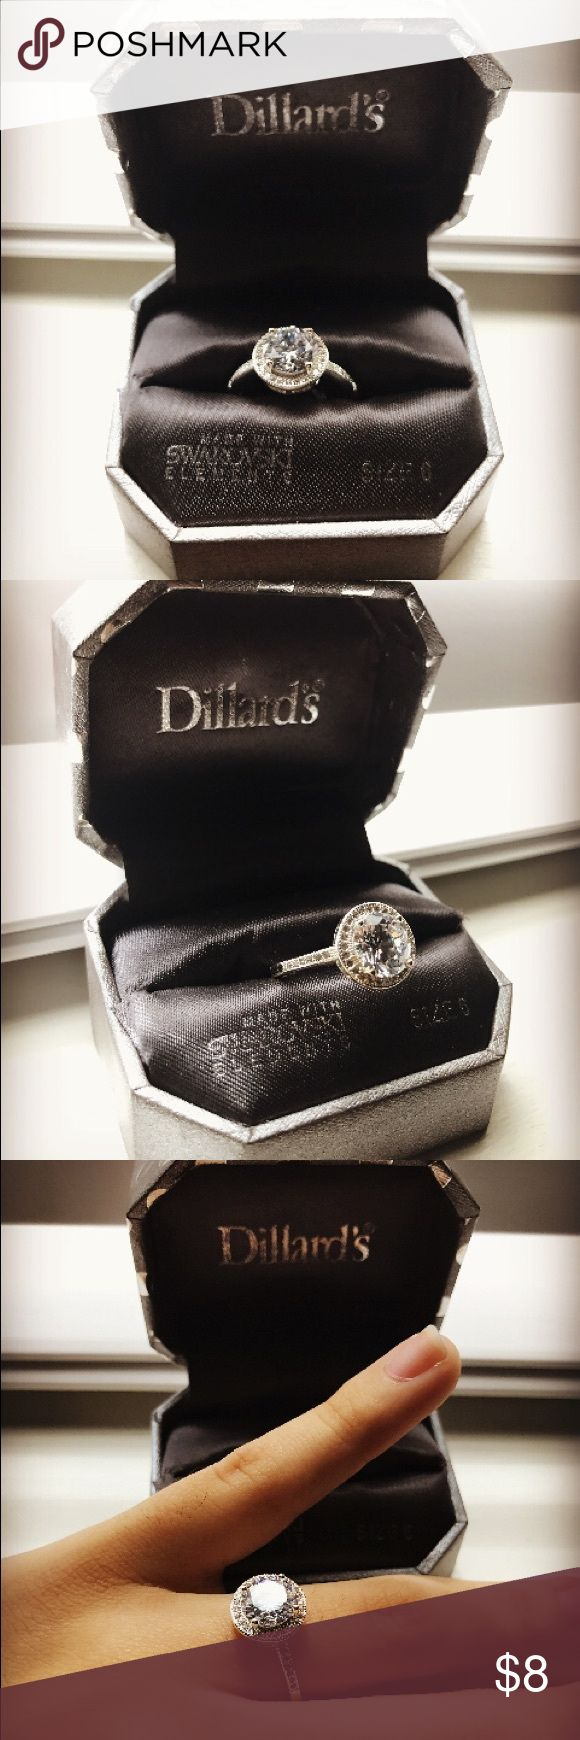 💍Dillard's Boxed Collection Cubic Zirconia Ring💍 NWT made with Swarovski Elements Dillards Collection Jewelry Rings